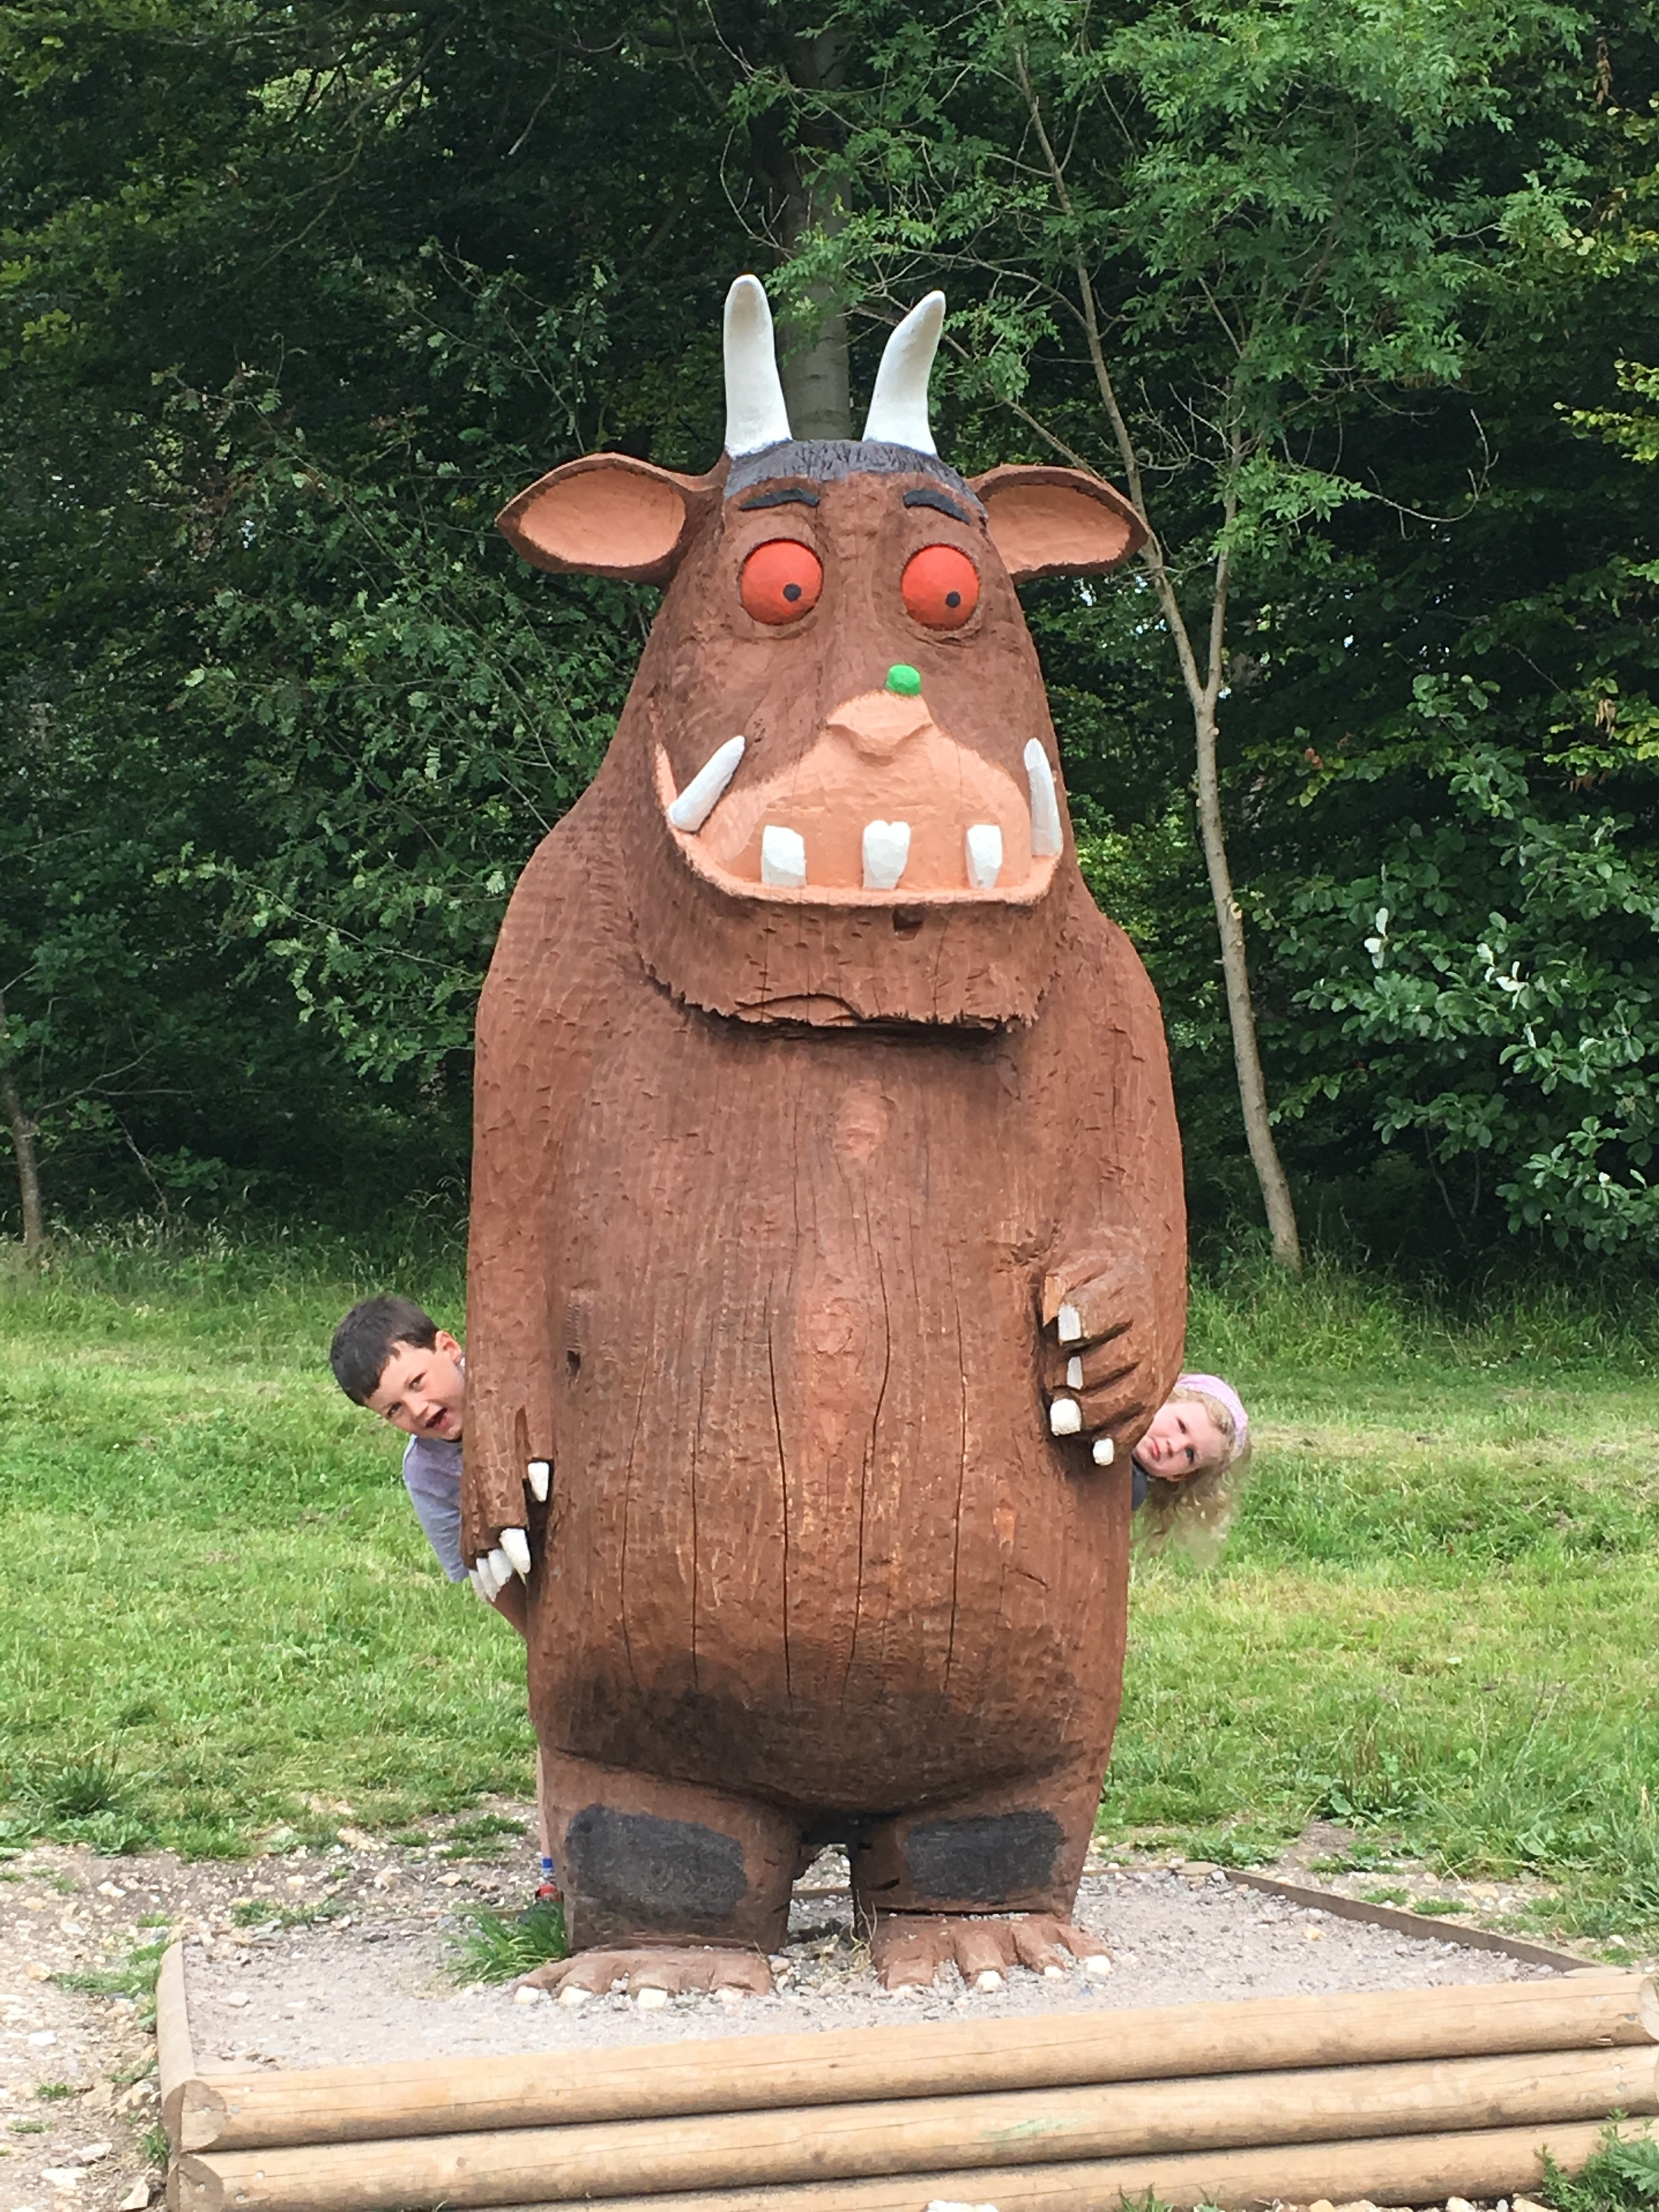 There's a sign requesting you don't climb on him, but quite frankly what else are those purple prickles for? No child can resist scaling a gruffalo.